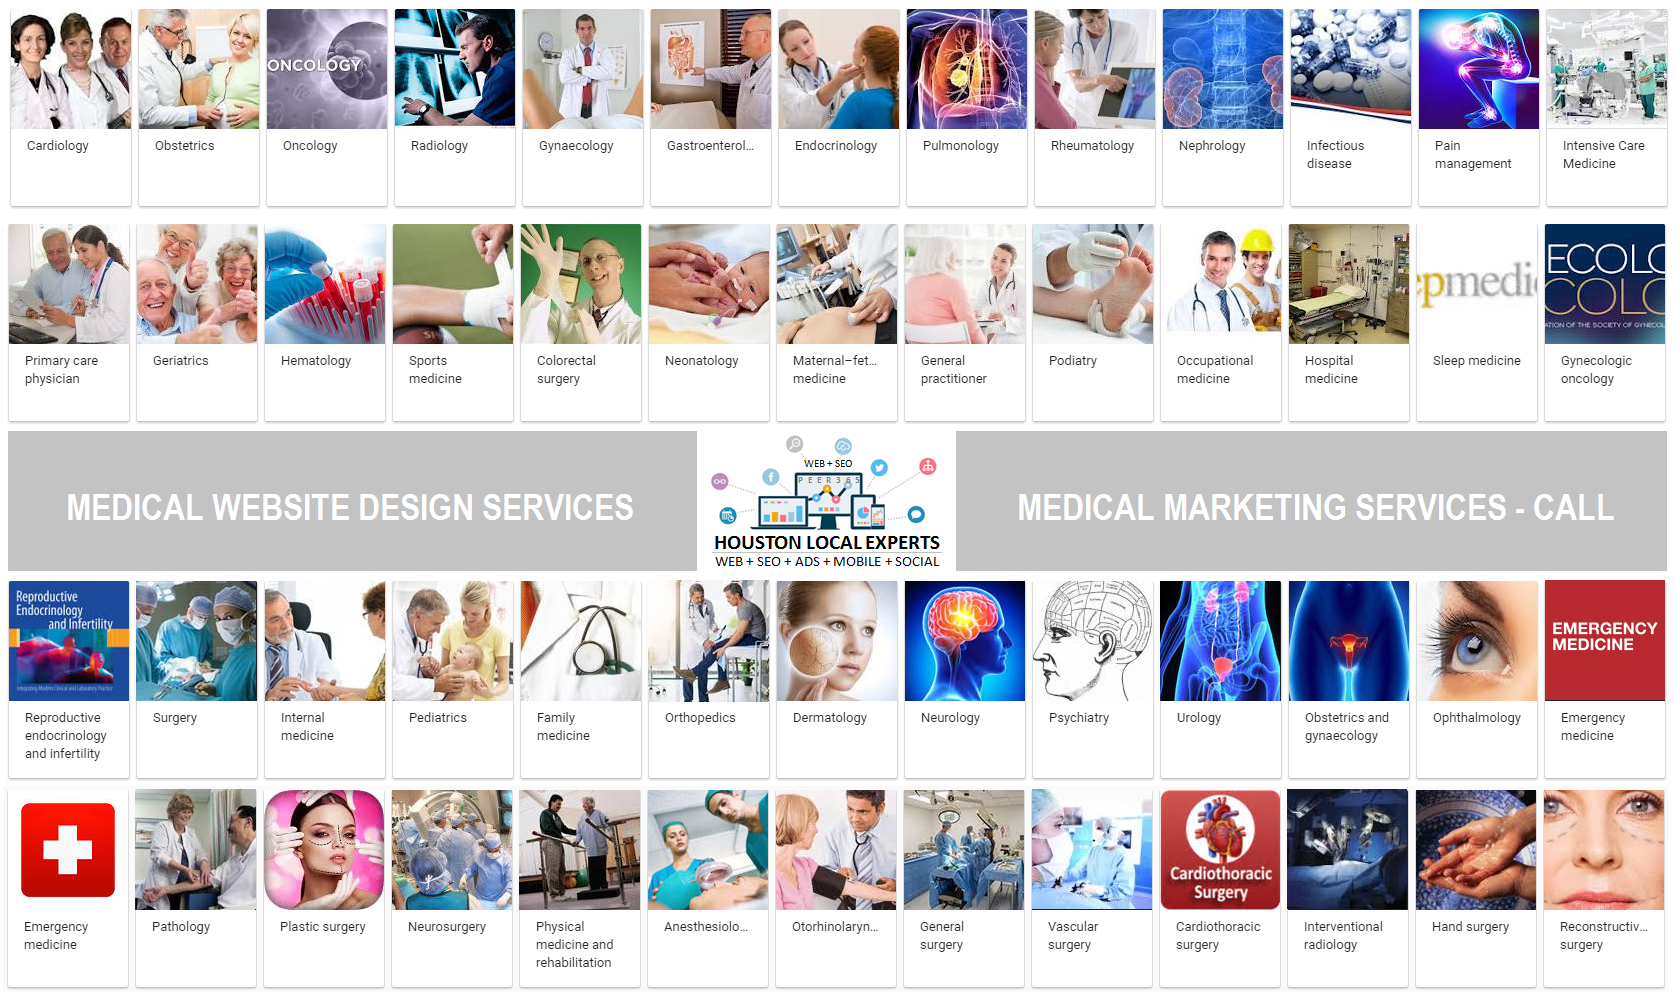 SEO CONSULTANT TEXAS MEDICAL CENTER WEB DESIGN AND SEO SERVICES